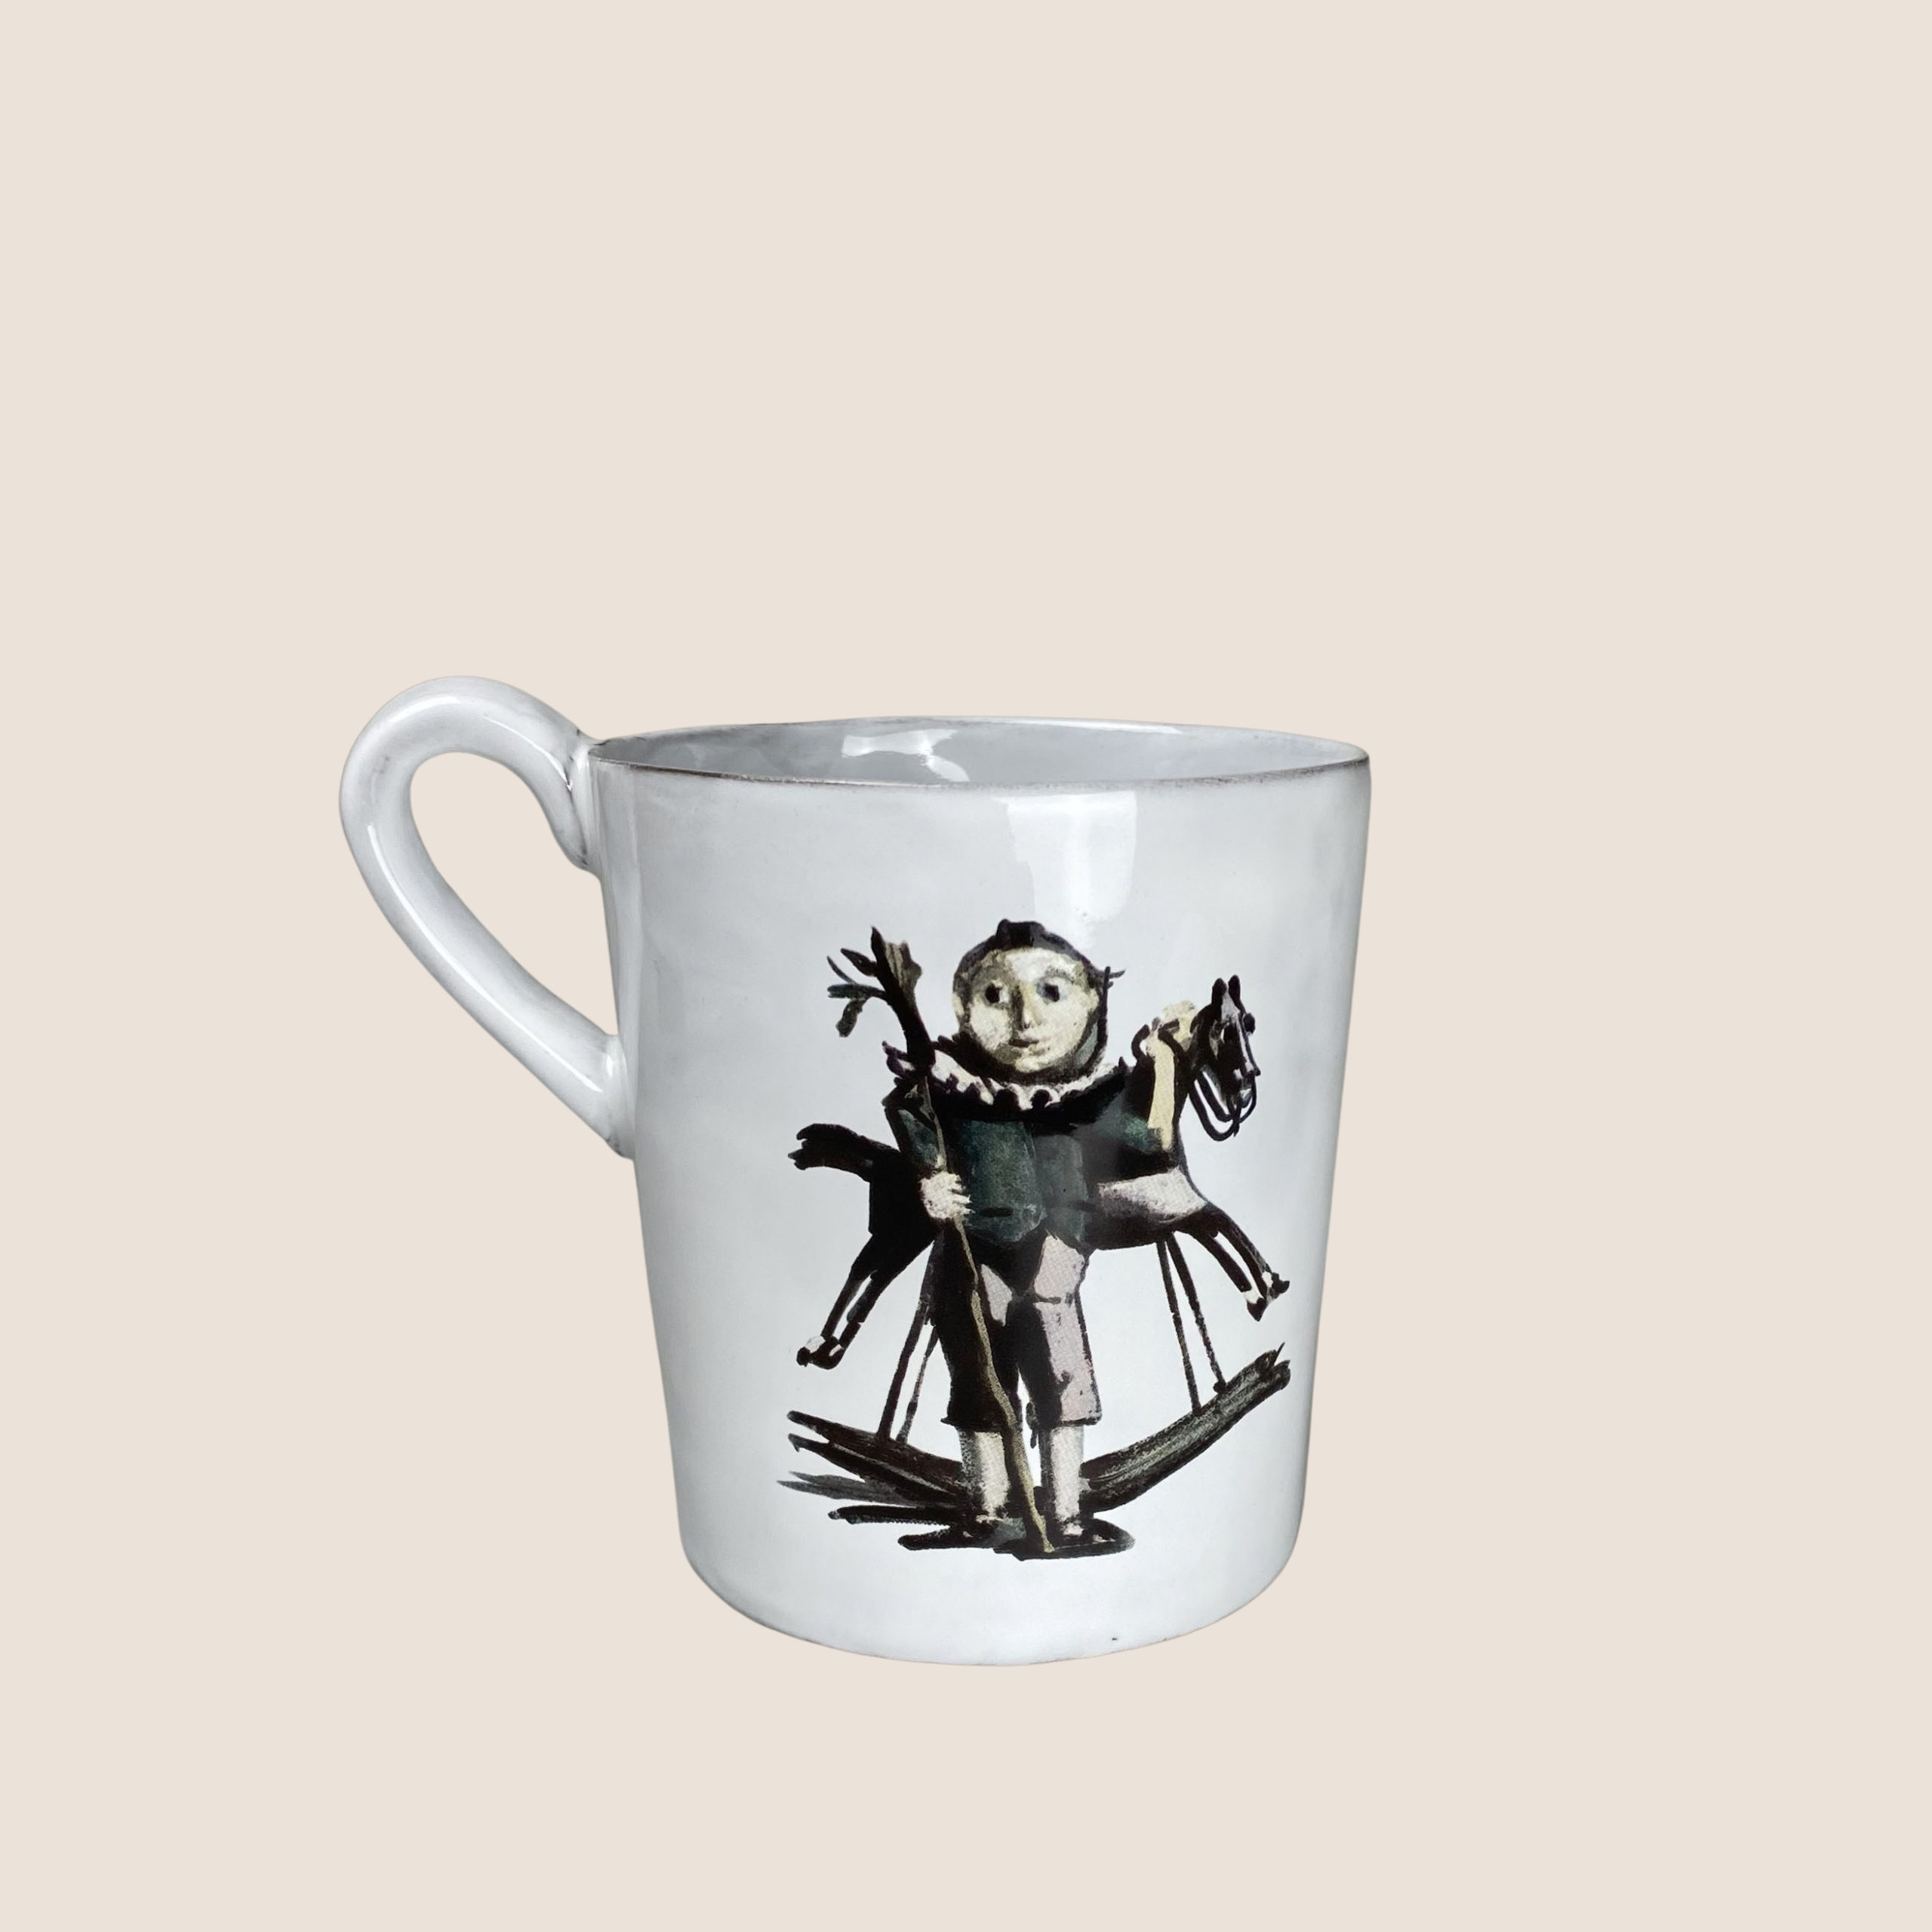 Illustrated Mug - Lui